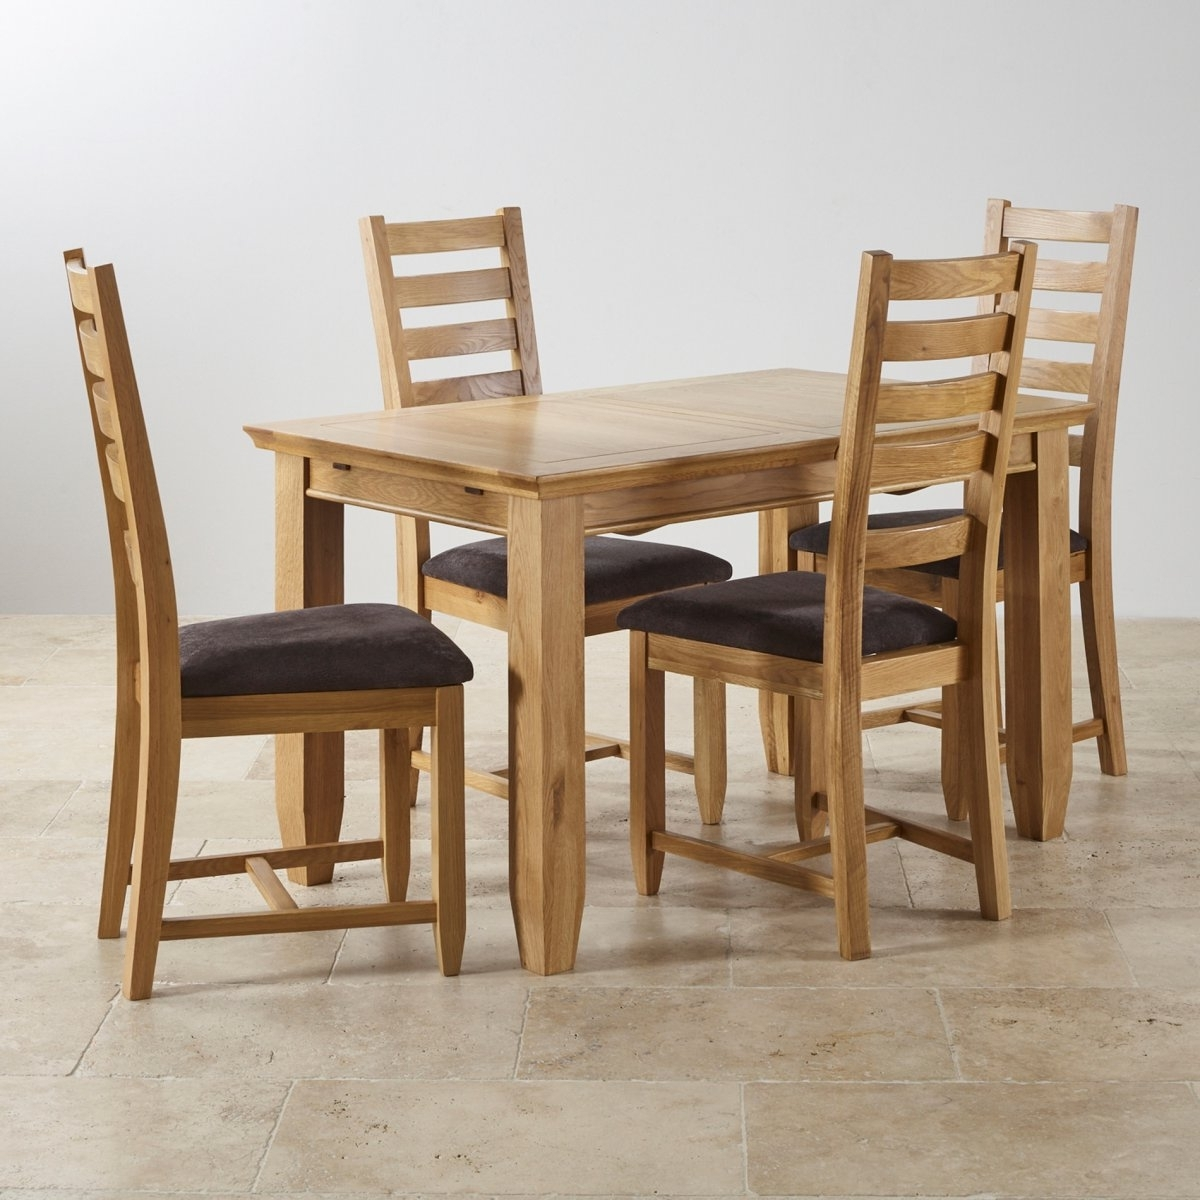 Extending Oak Dining Tables And Chairs For Newest Classic Extending Dining Set In Oak Dining Table 6 Chairs Wooden (View 15 of 25)